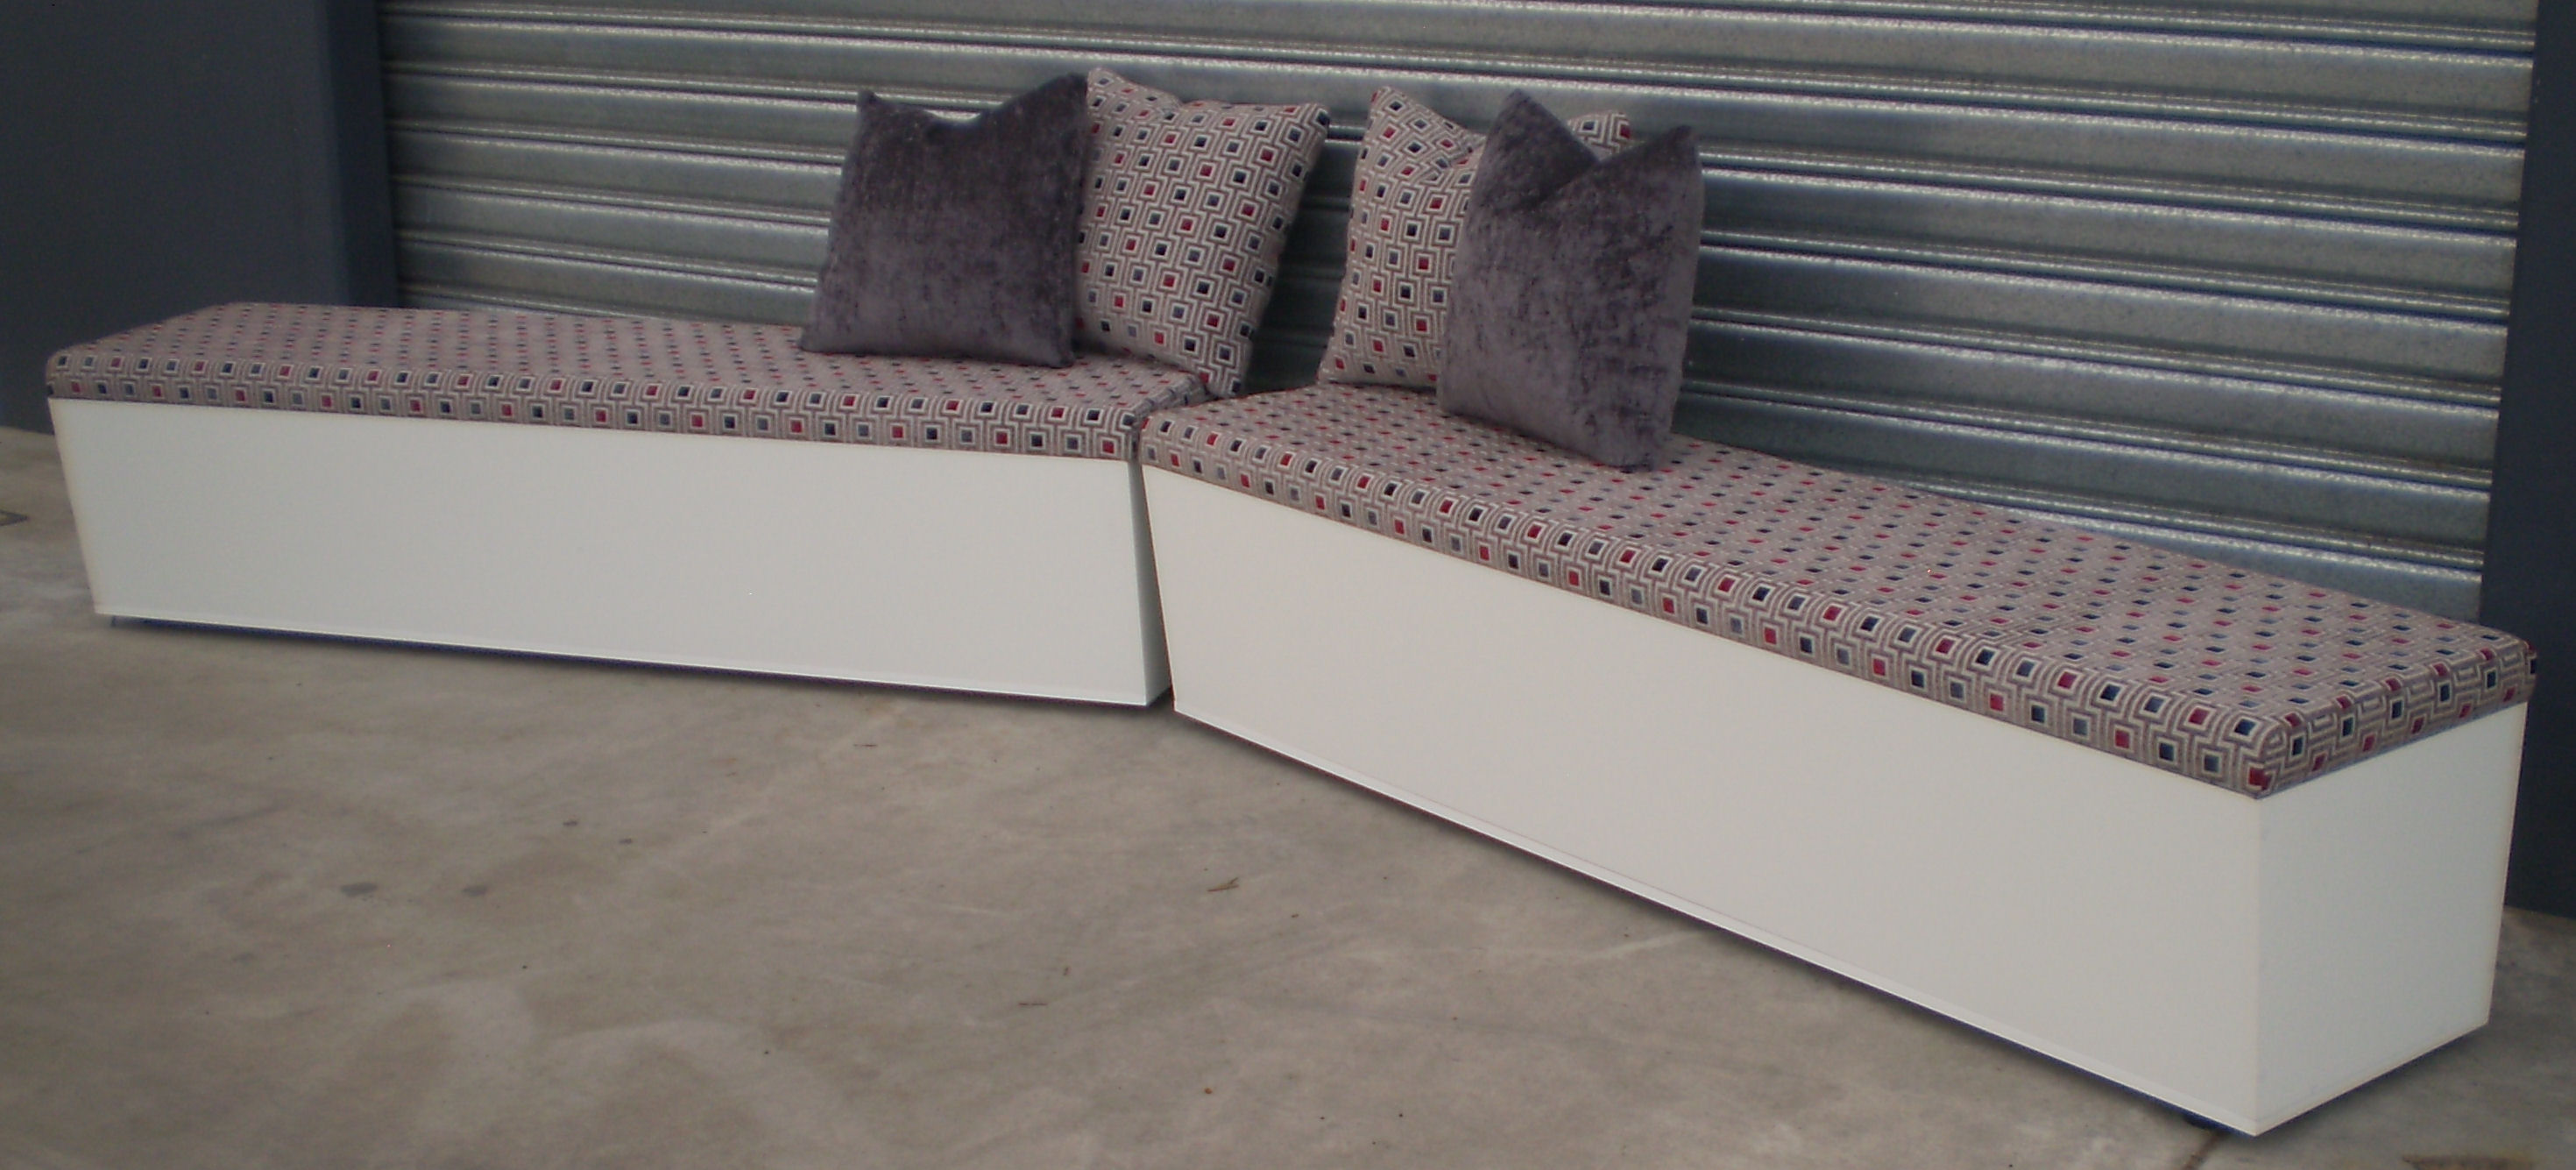 Pakenham Storage Banquette Storage Seating Or Window Seating Available In Melbourne